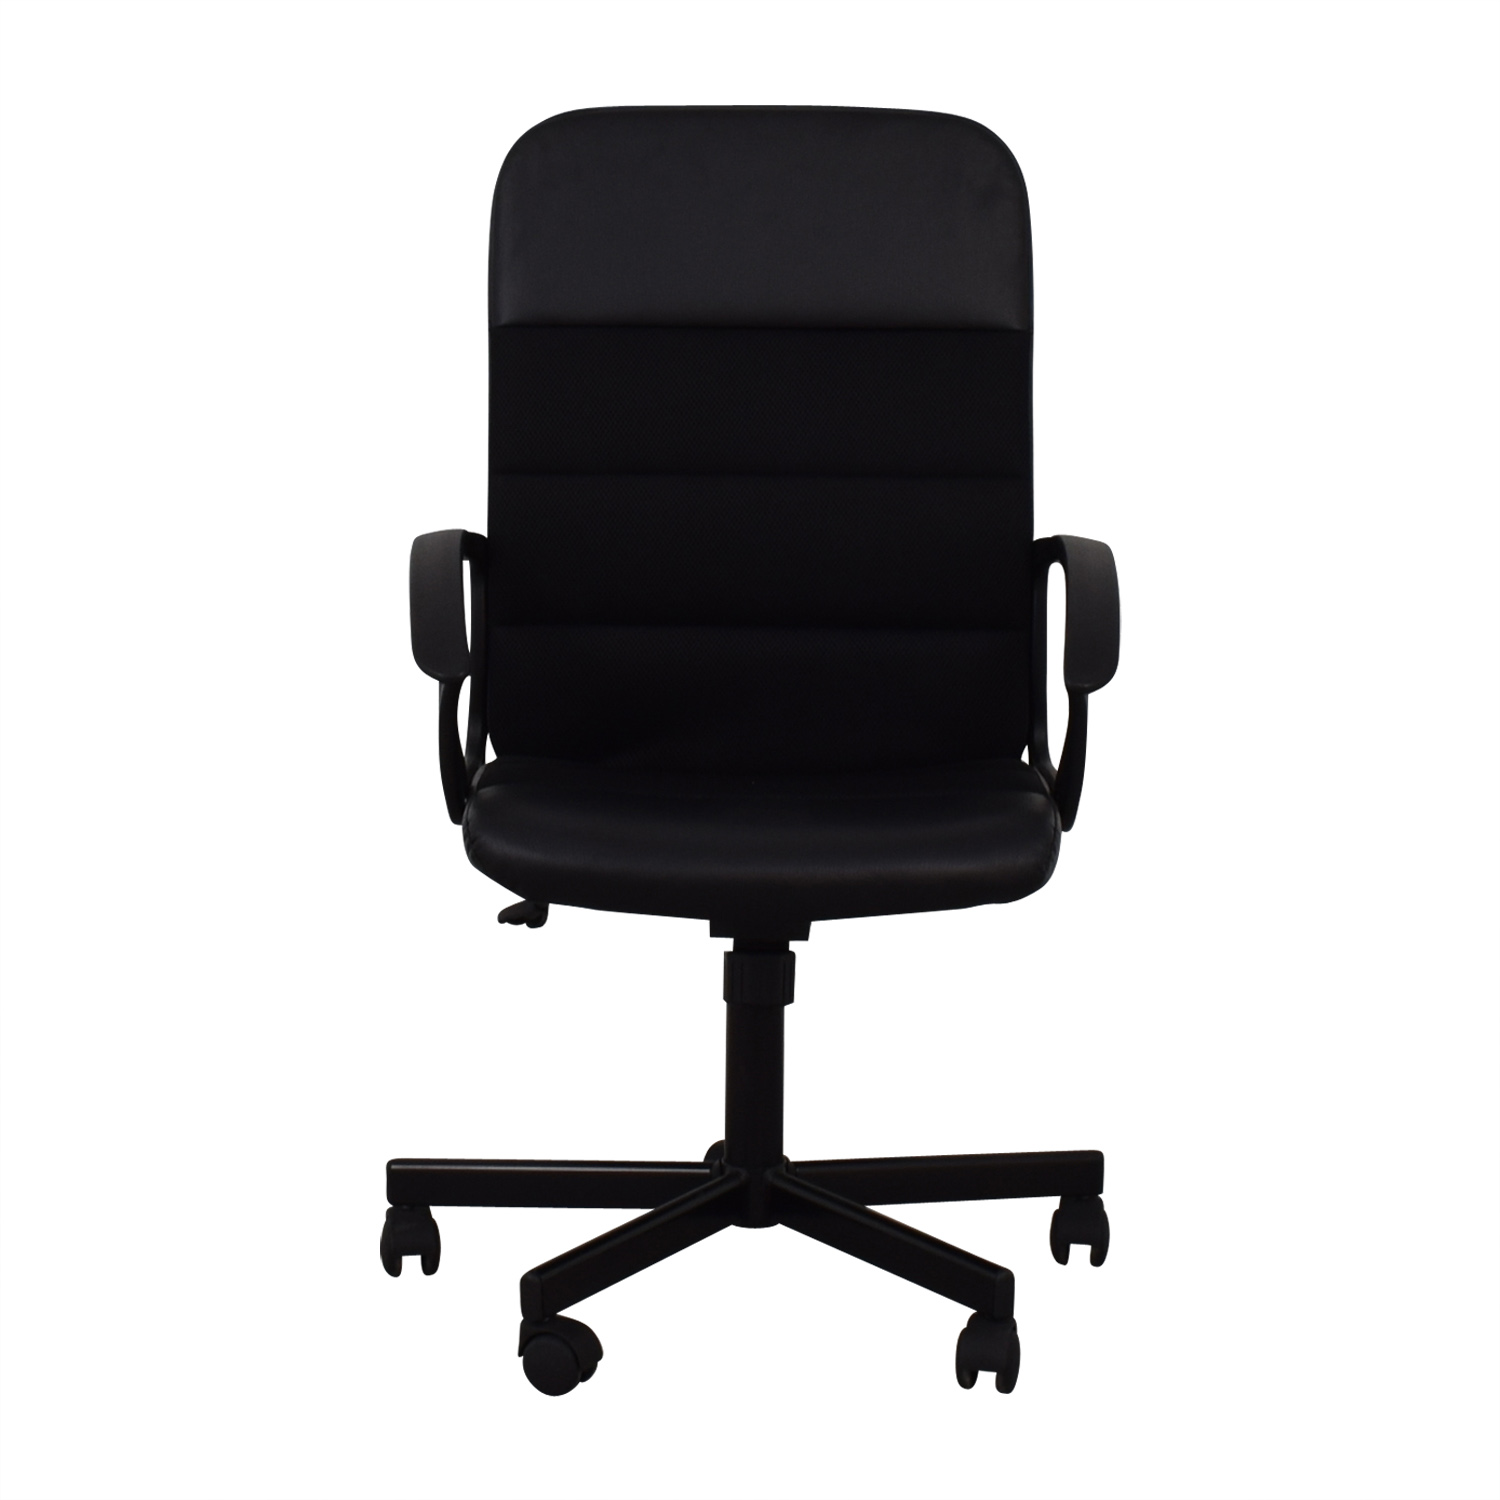 IKEA IKEA Renberget Black Office Chairs Home Office Chairs